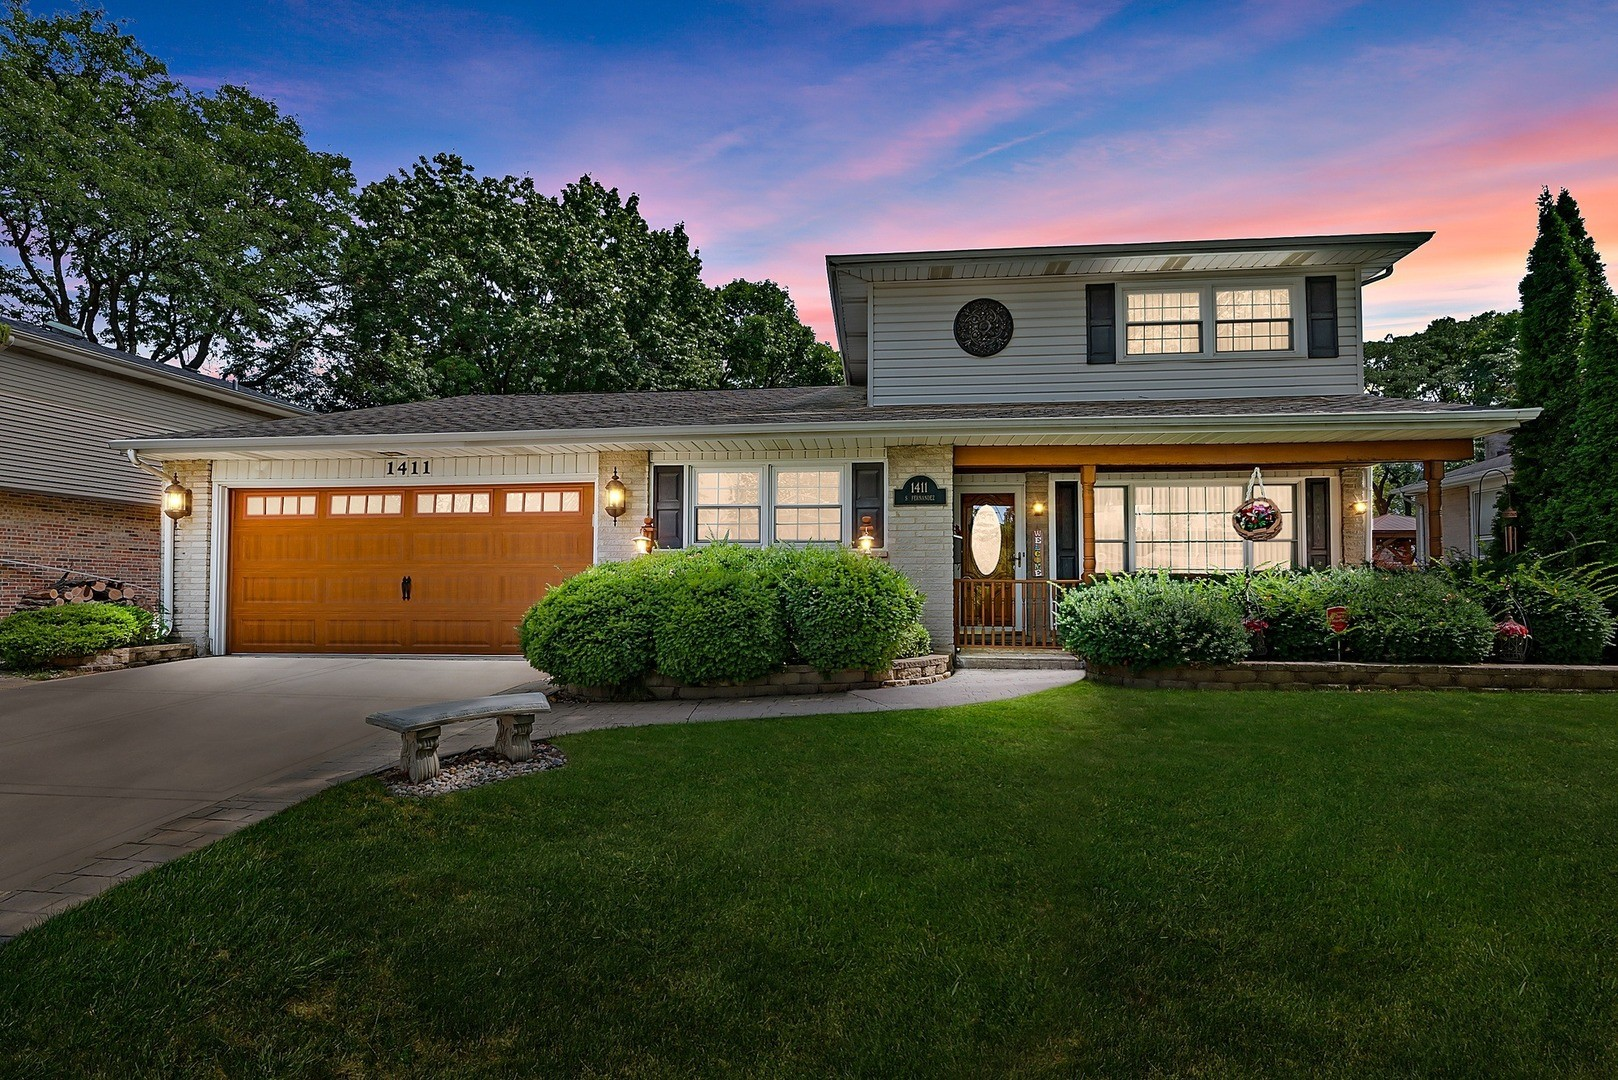 2613 SqFt House In Realcoa In Arlington Heights